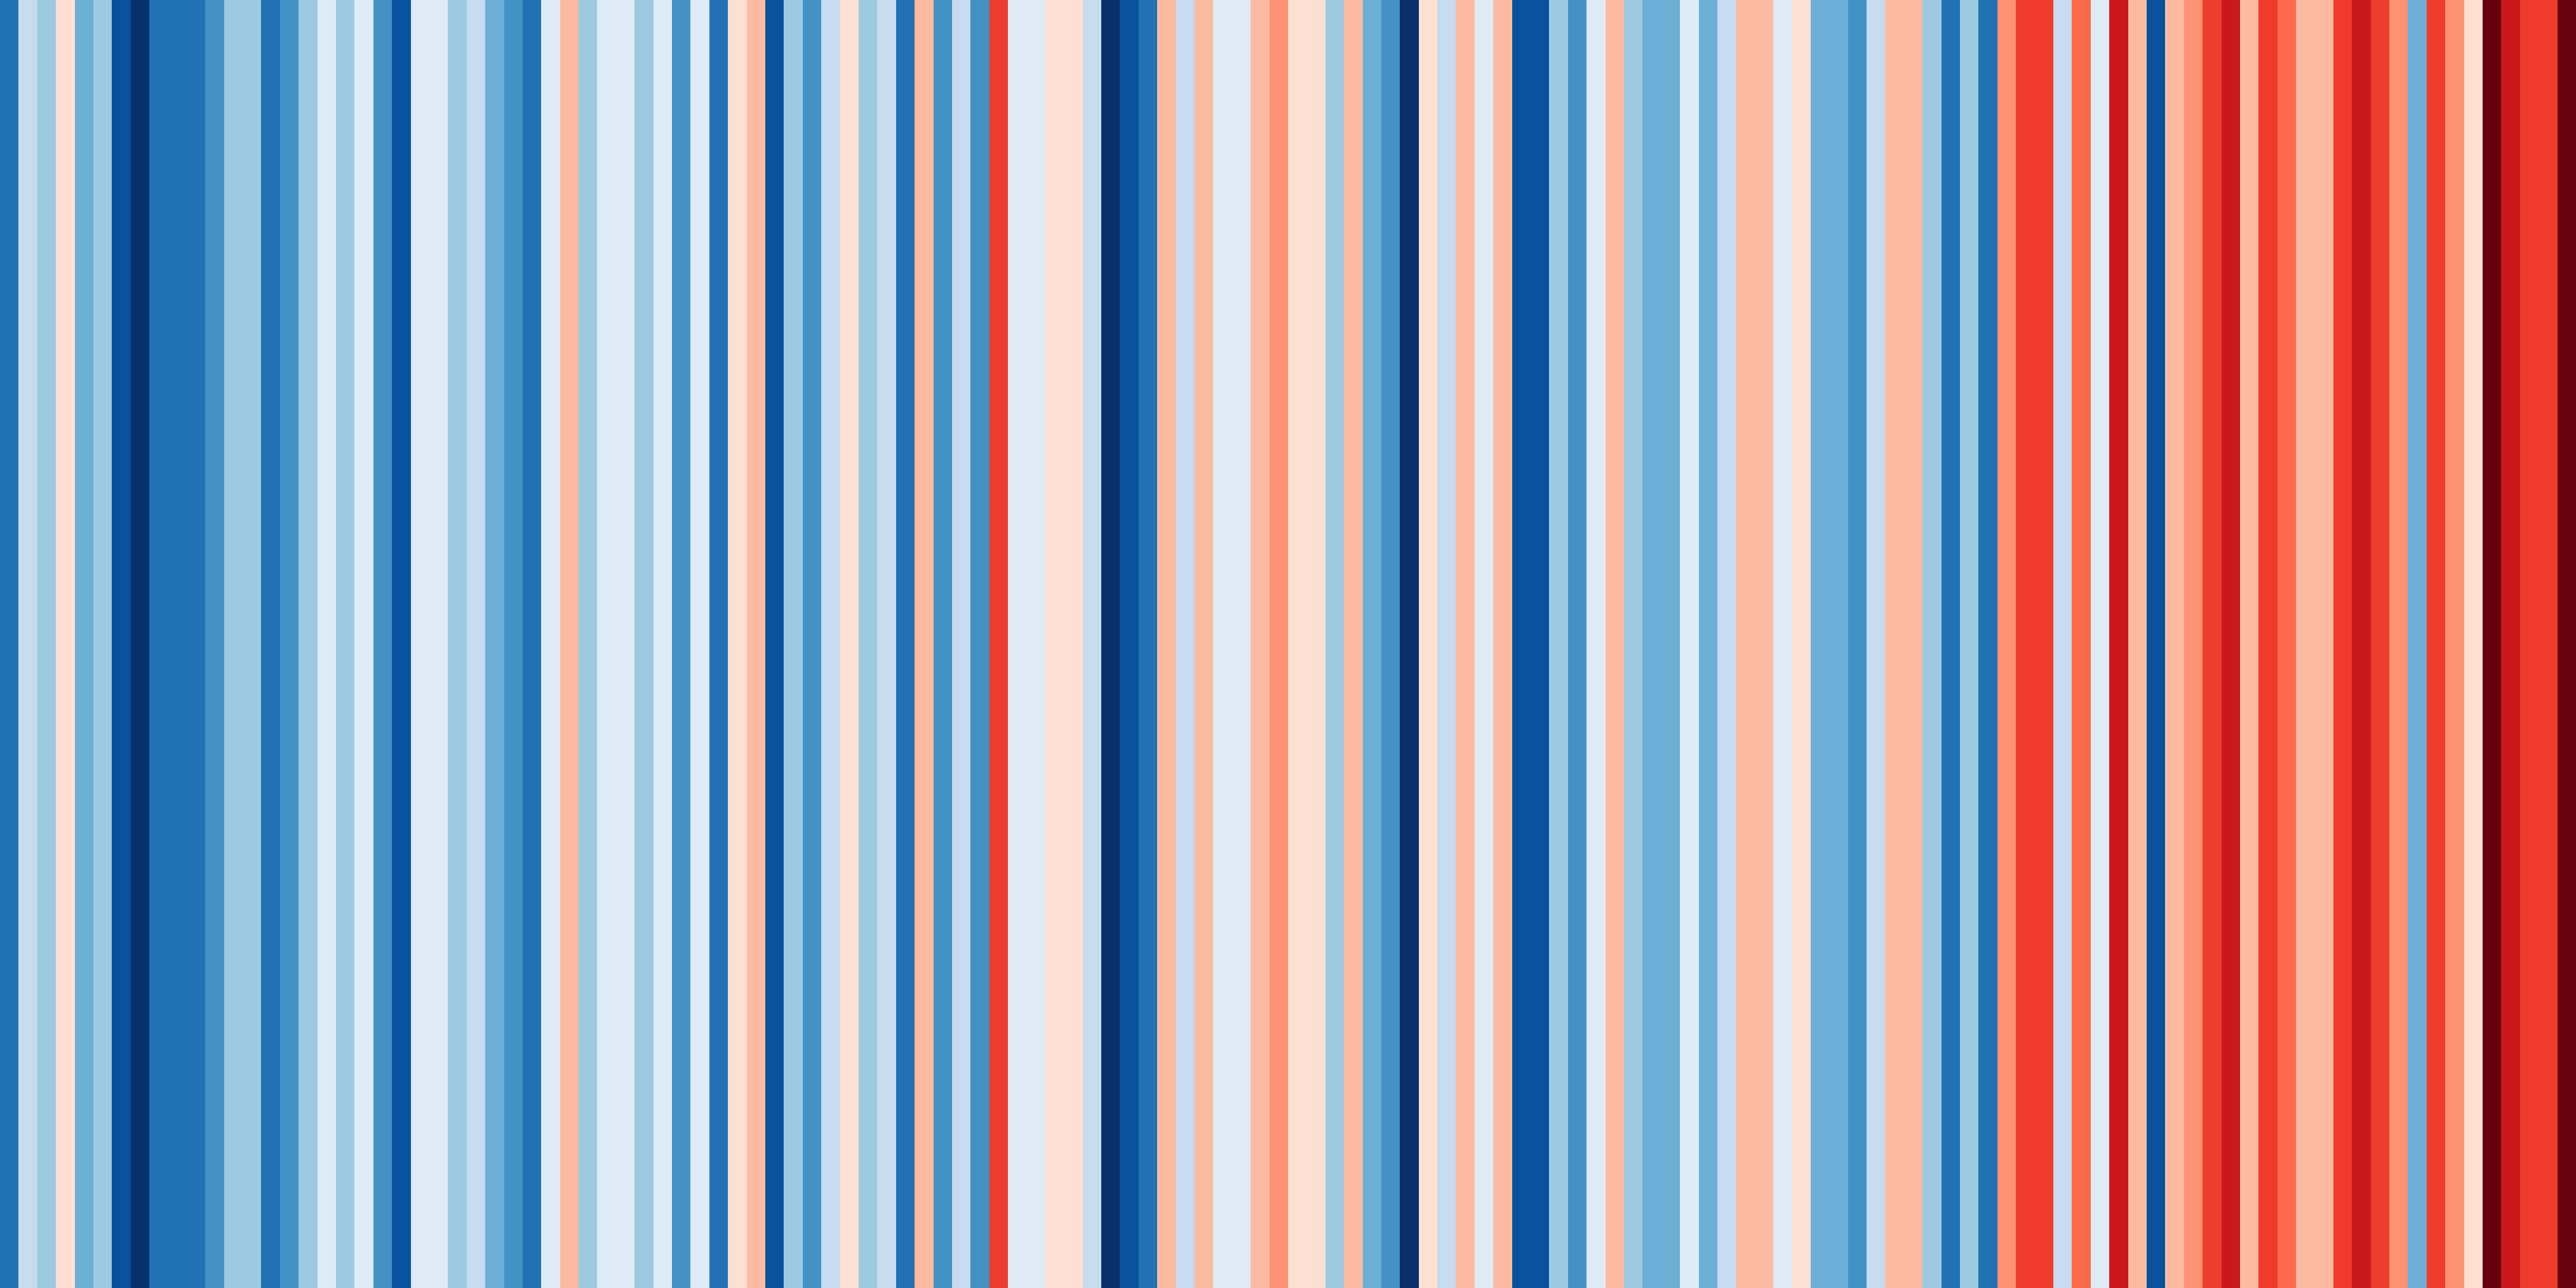 Warming Stripes for Germany from 1881-2018